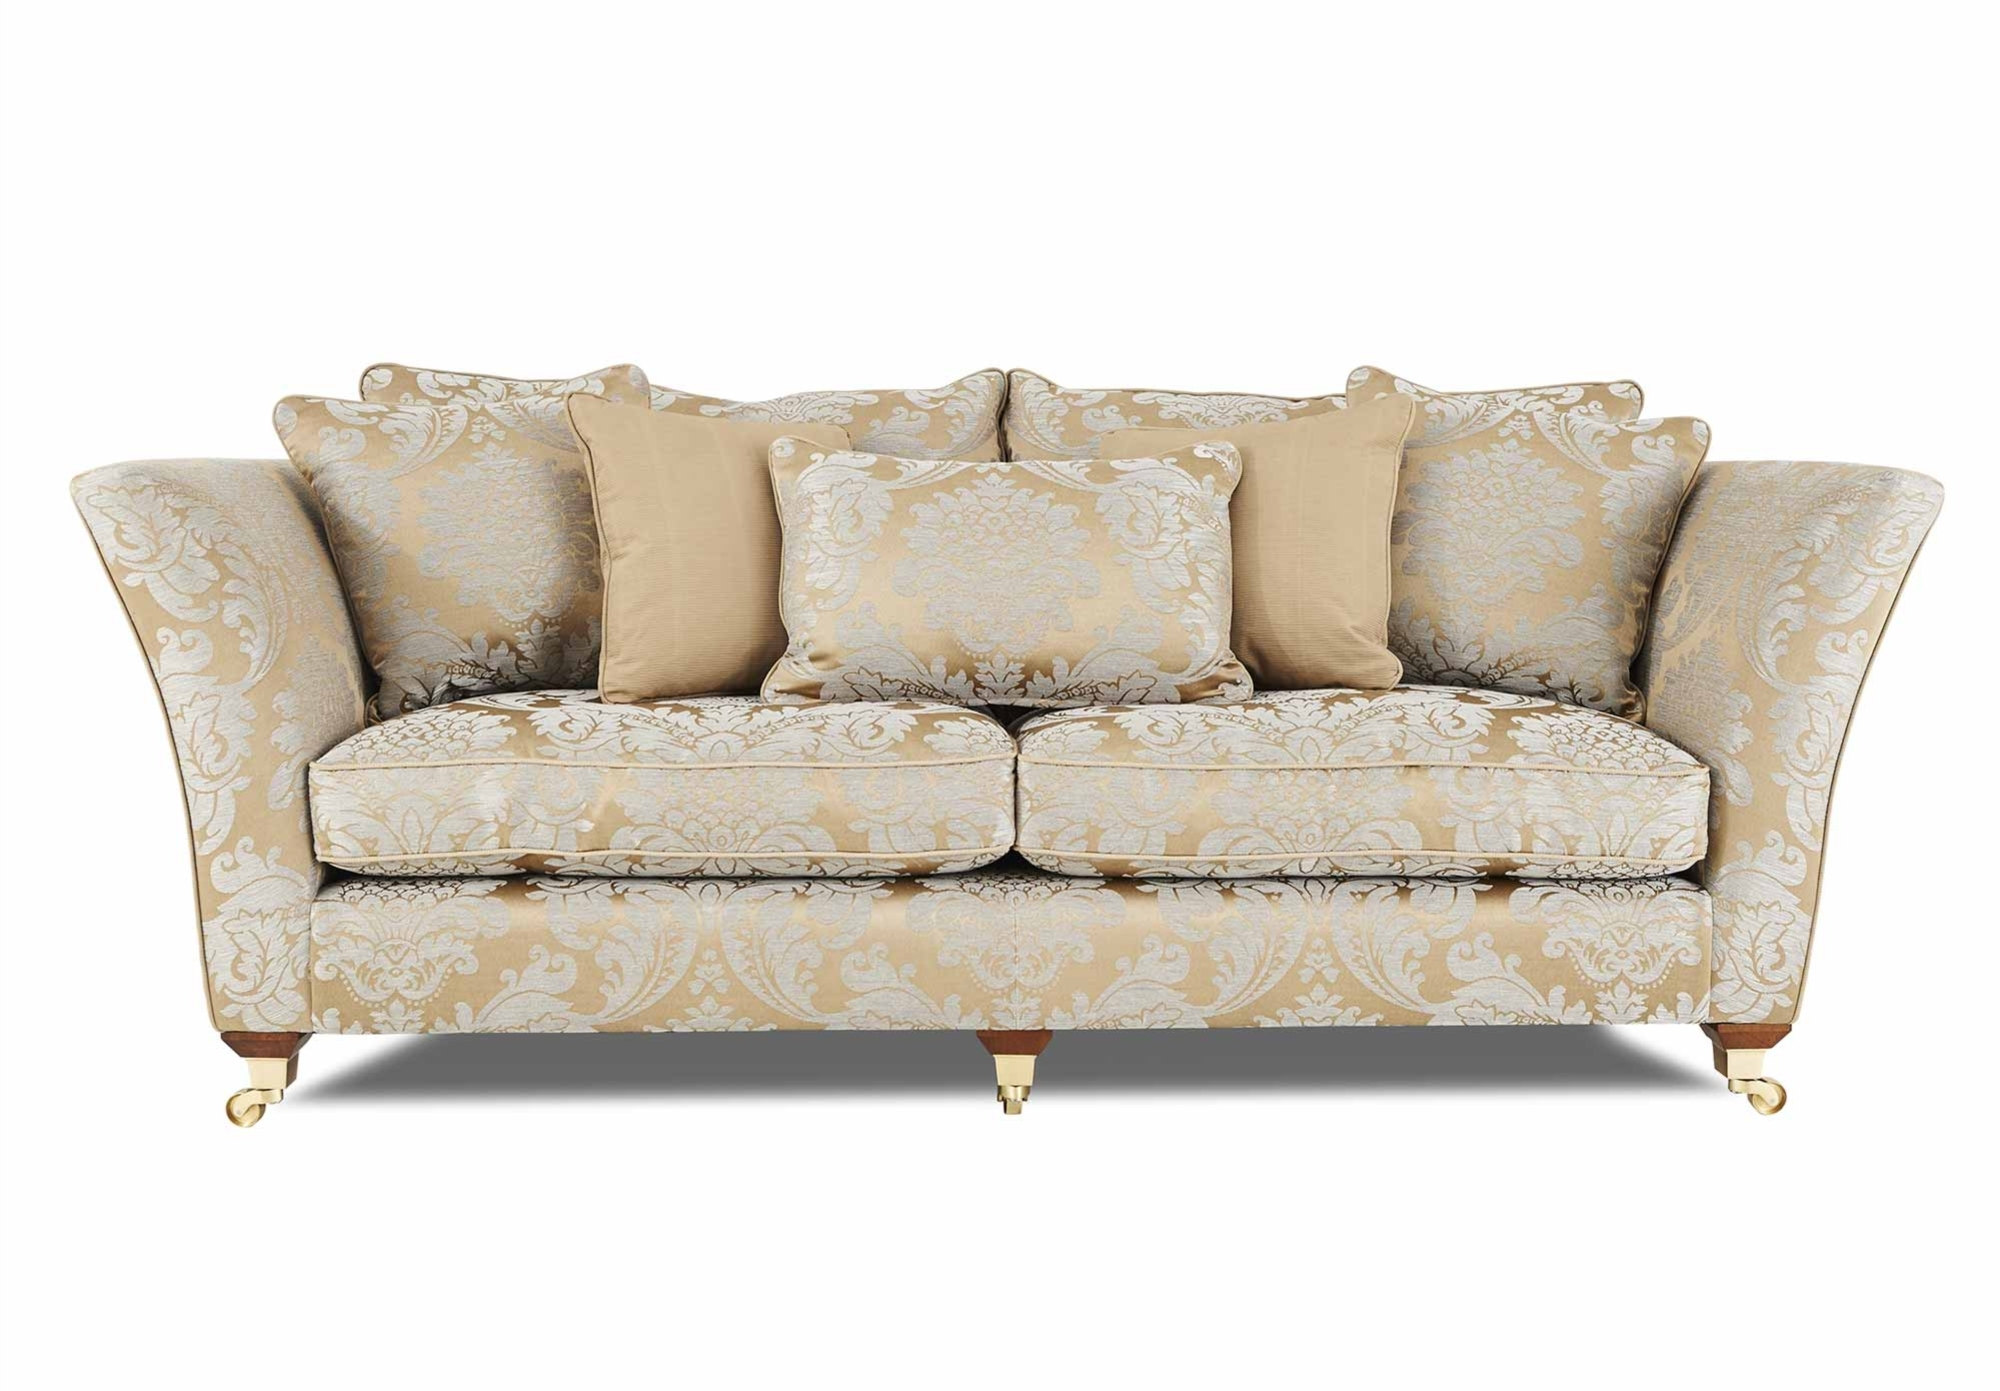 4 Seater Sofa Vantage Gorgeous Living Room Furniture From With Regard To Four Seater Sofas (Image 4 of 15)